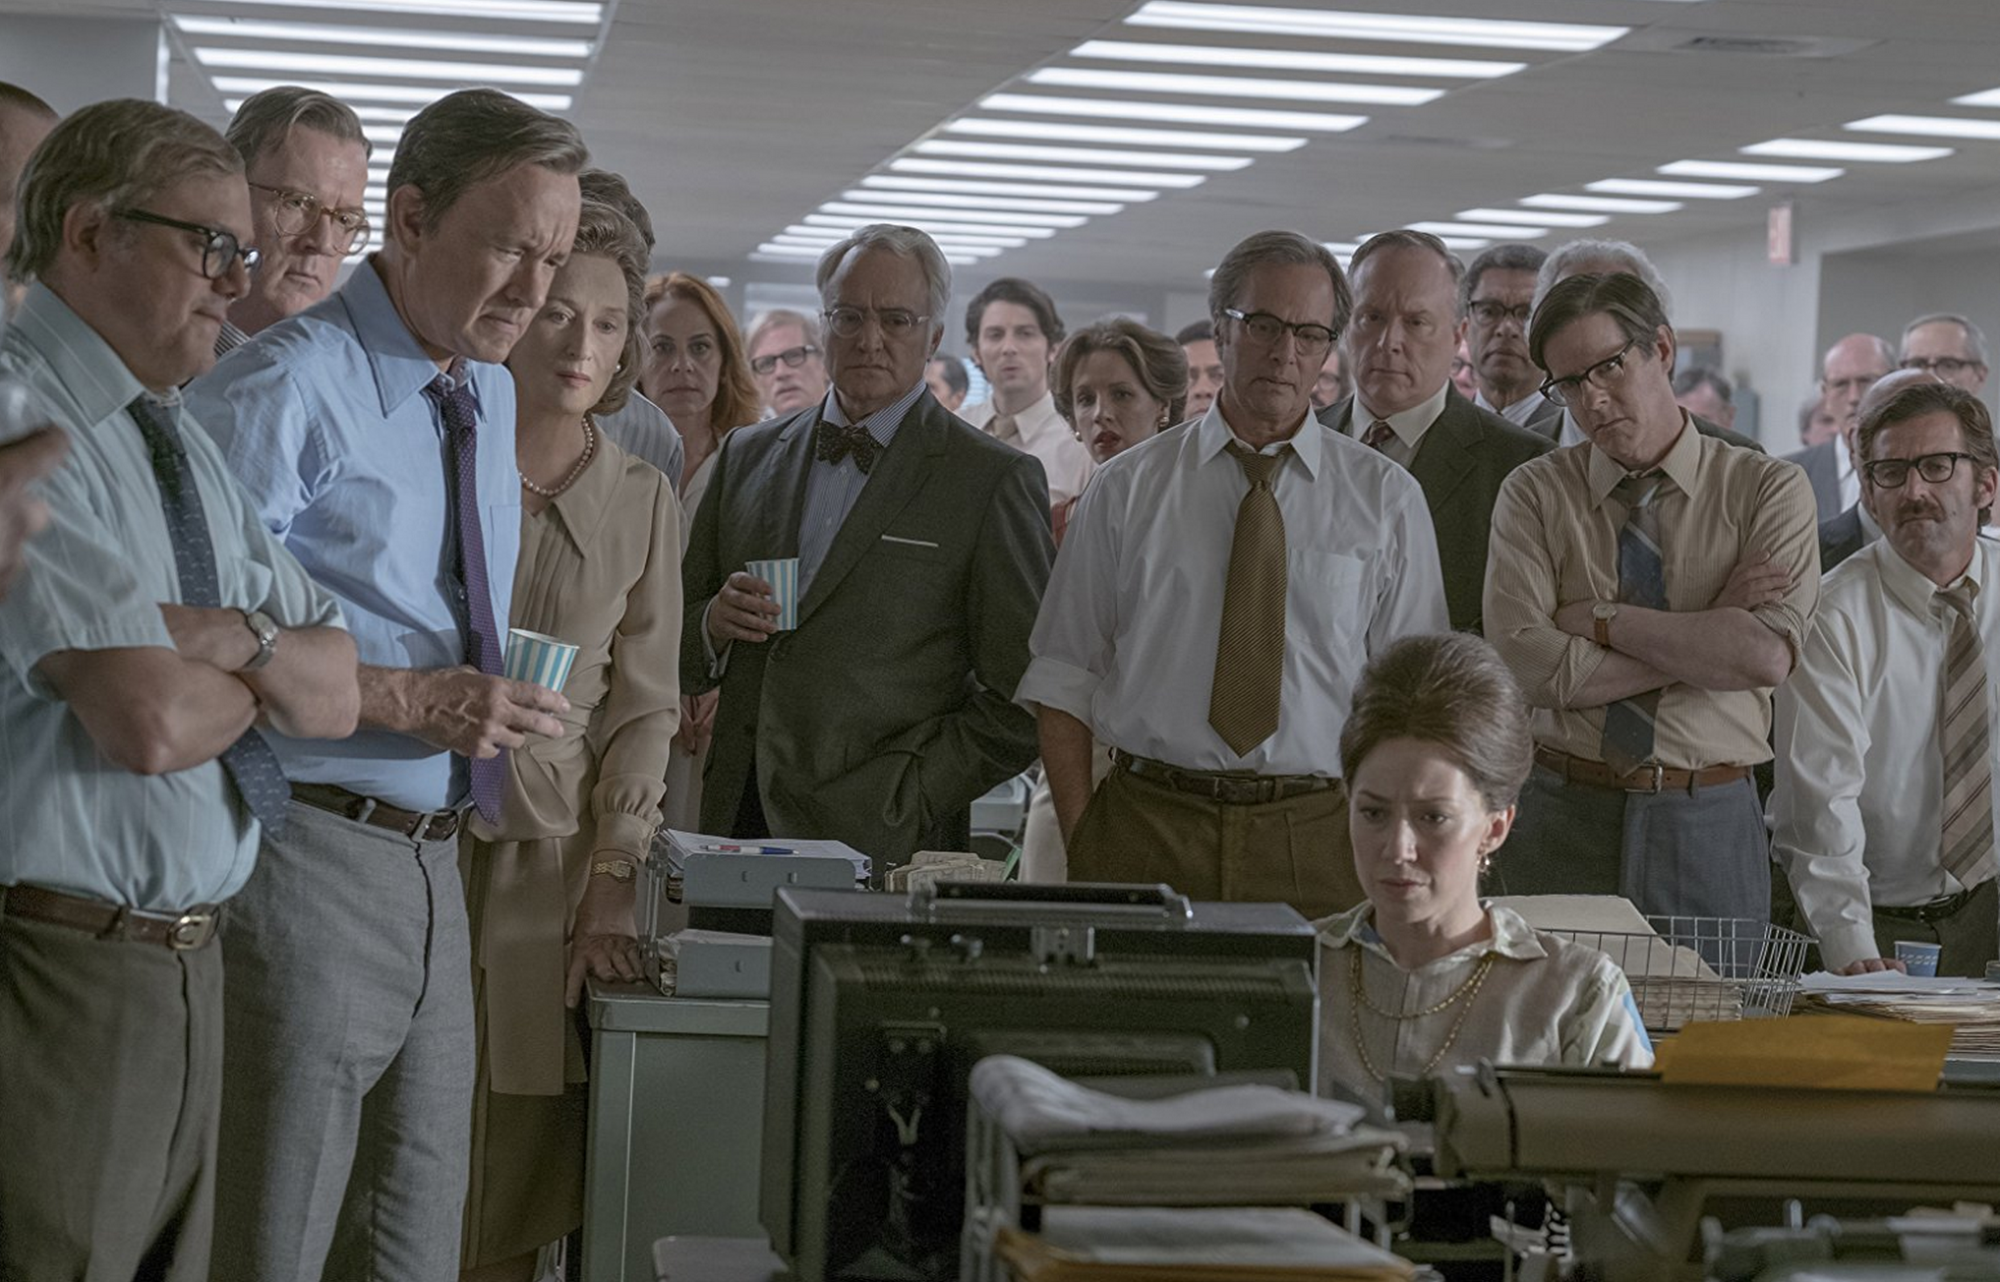 Prior to the Watergate scandal, The Post leaves viewers on edge